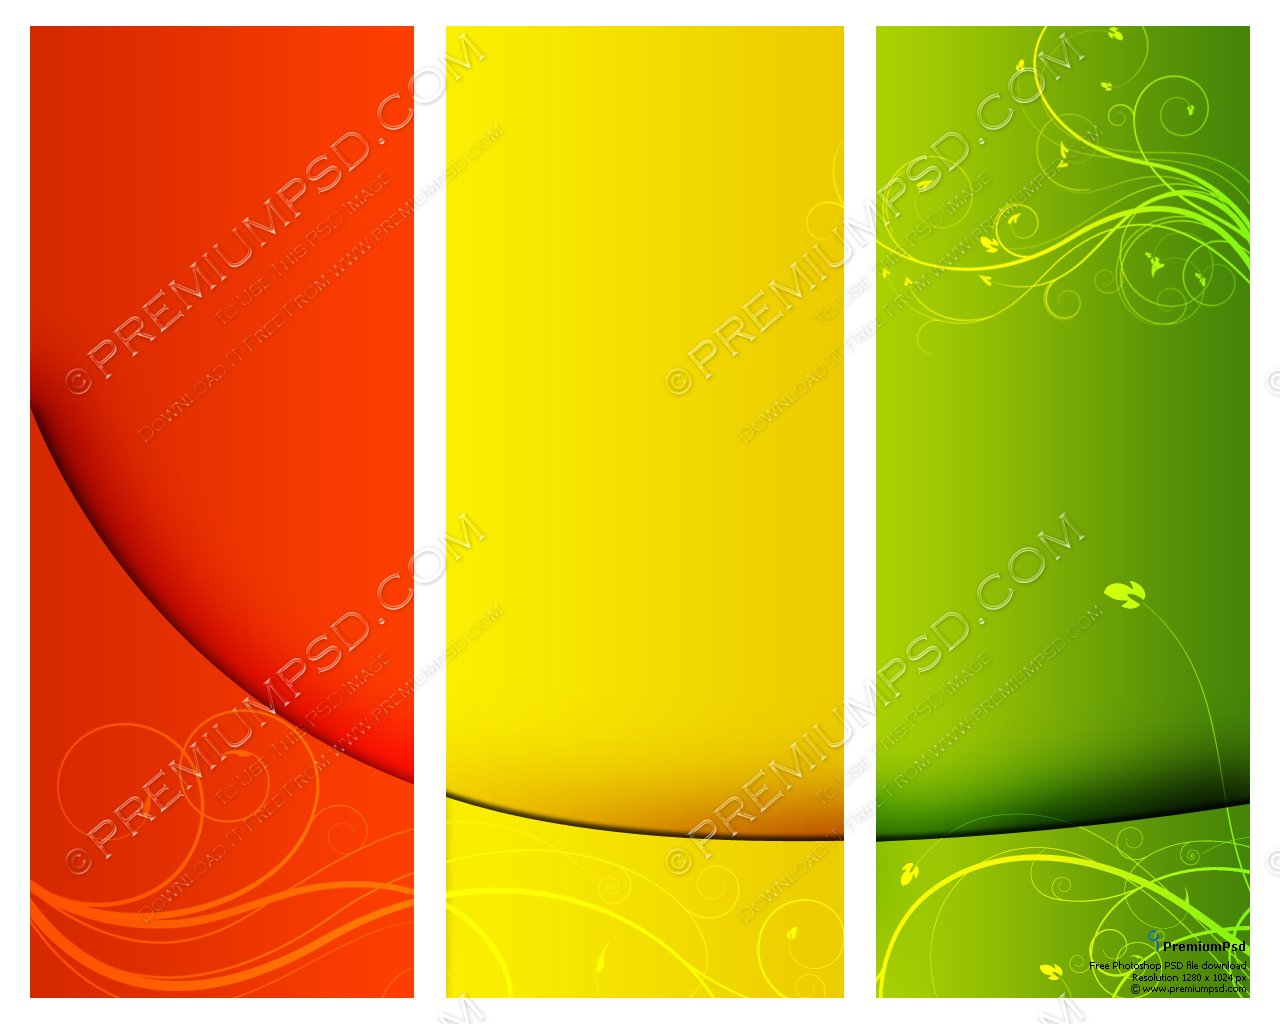 7 Interior Wall Background PSD Images